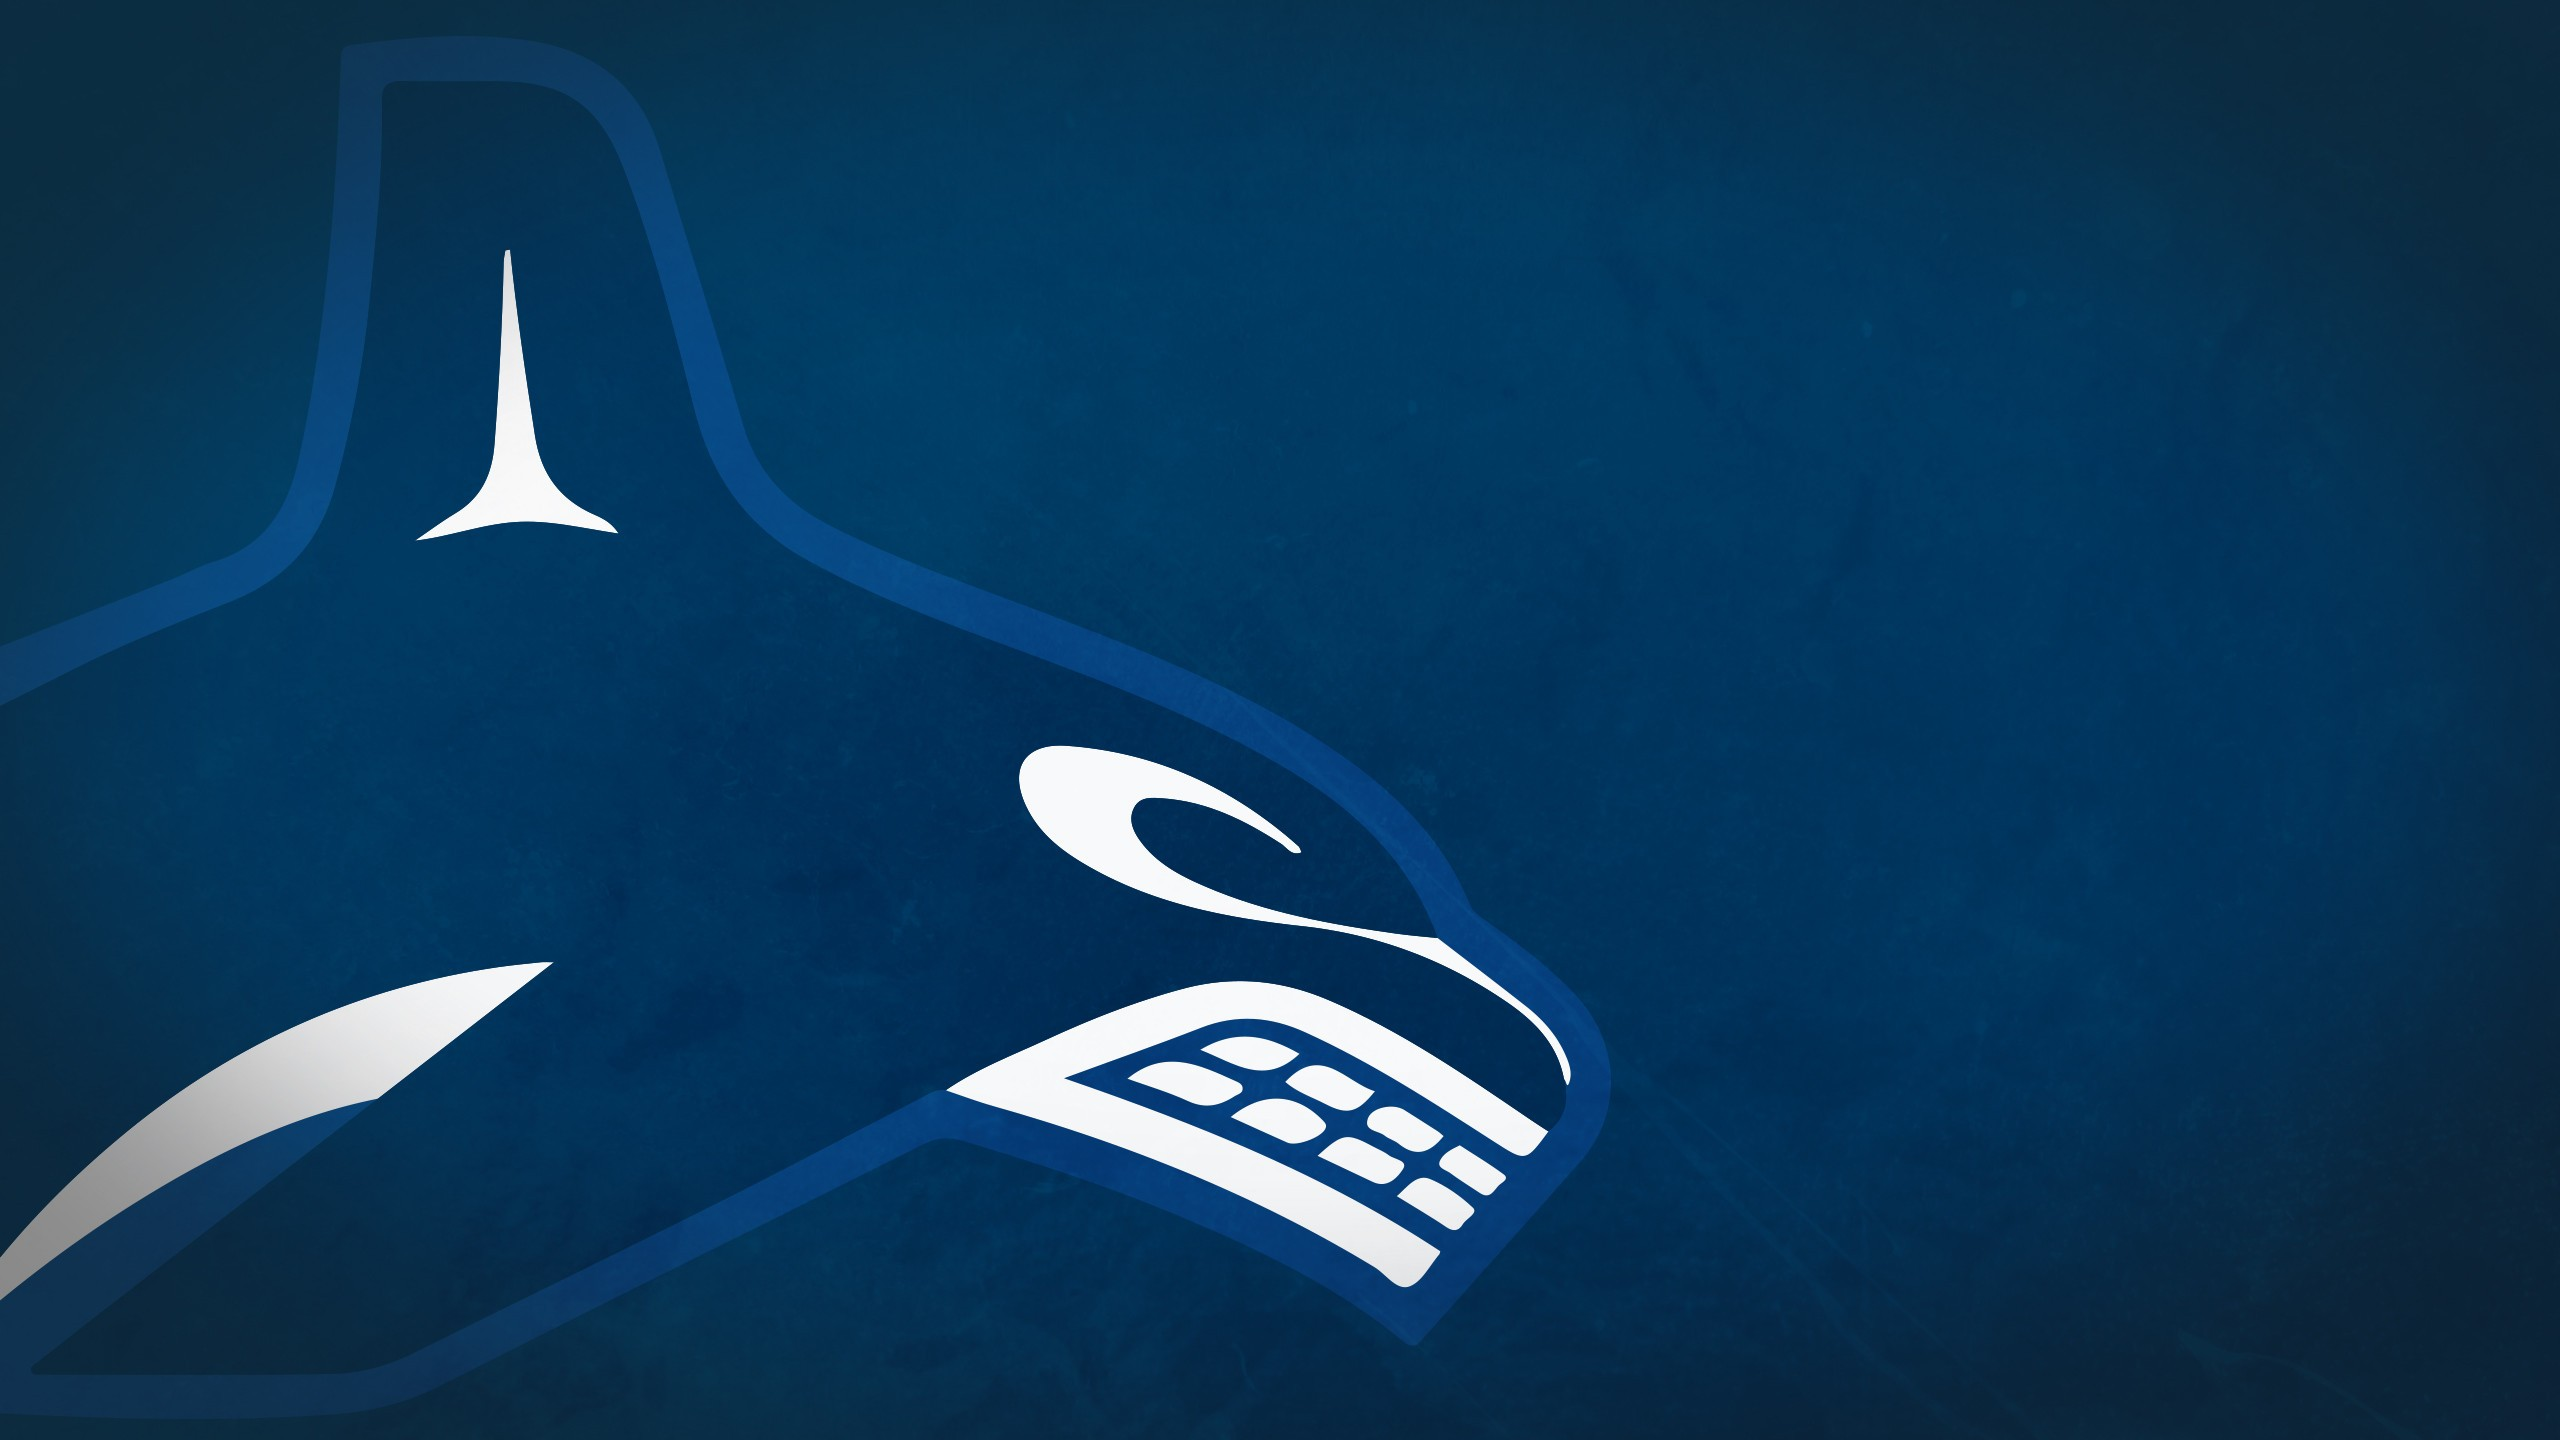 Vancouver Canucks HD Wallpapers Backgrounds 2560x1440